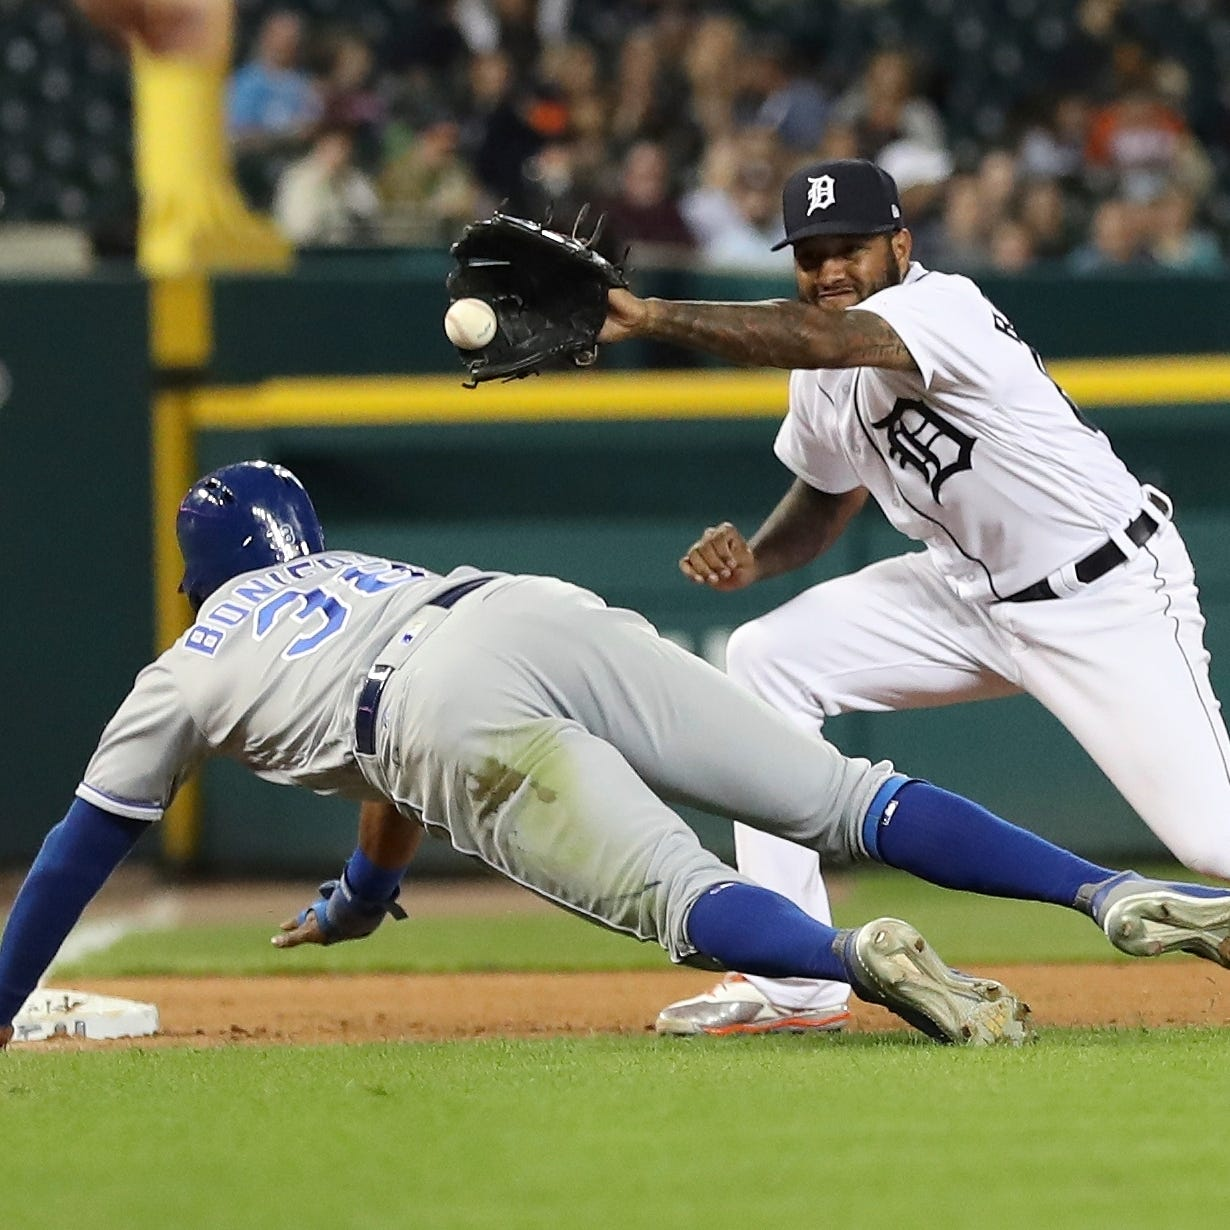 Tigers contribute to own demise with 'bad baseball'